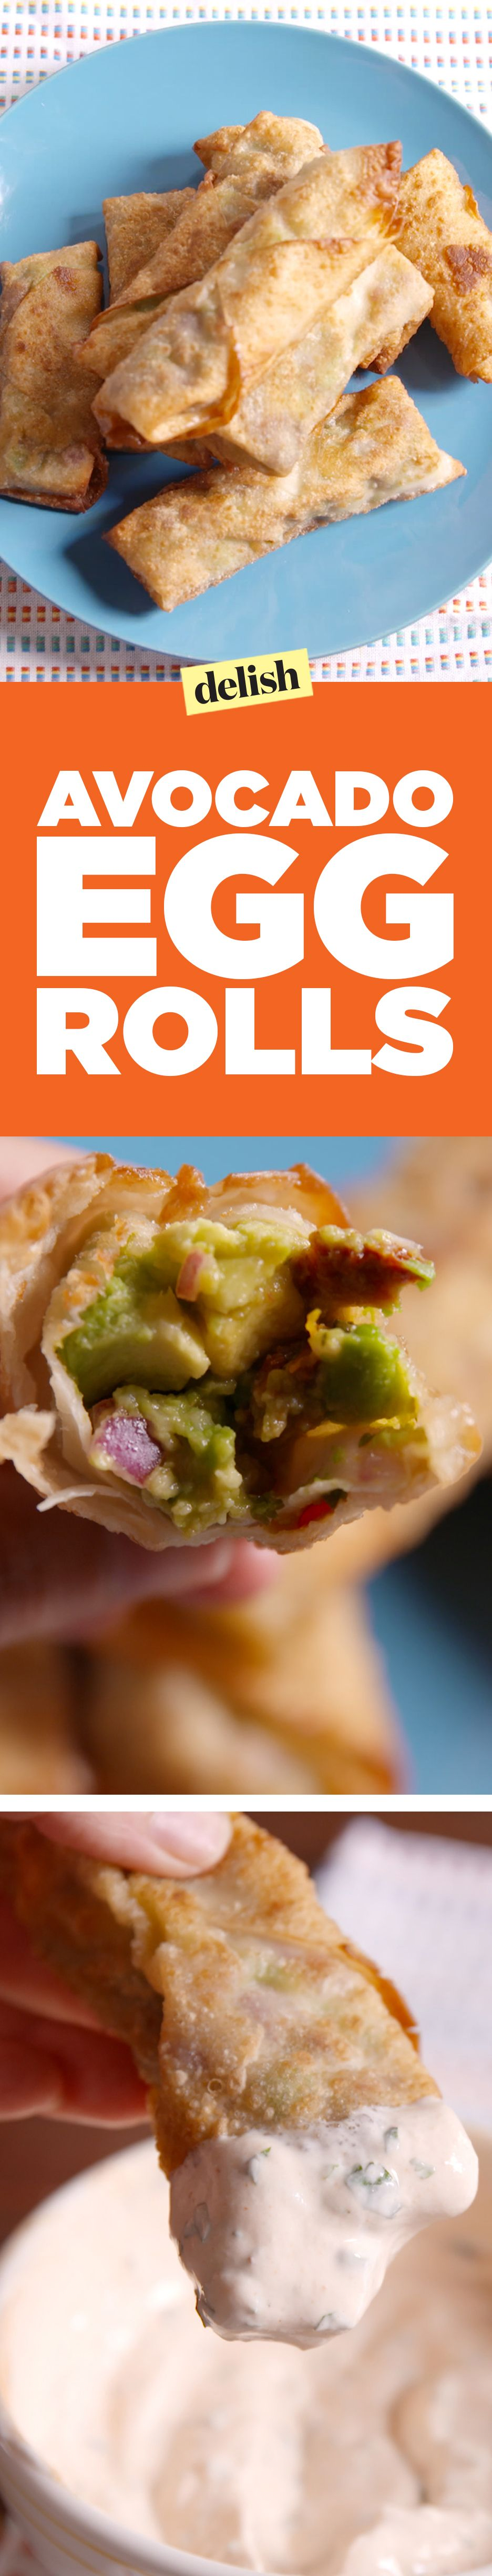 Our avocado egg rolls taste JUST like The Cheesecake Factory. Get the recipe on Delish.com.